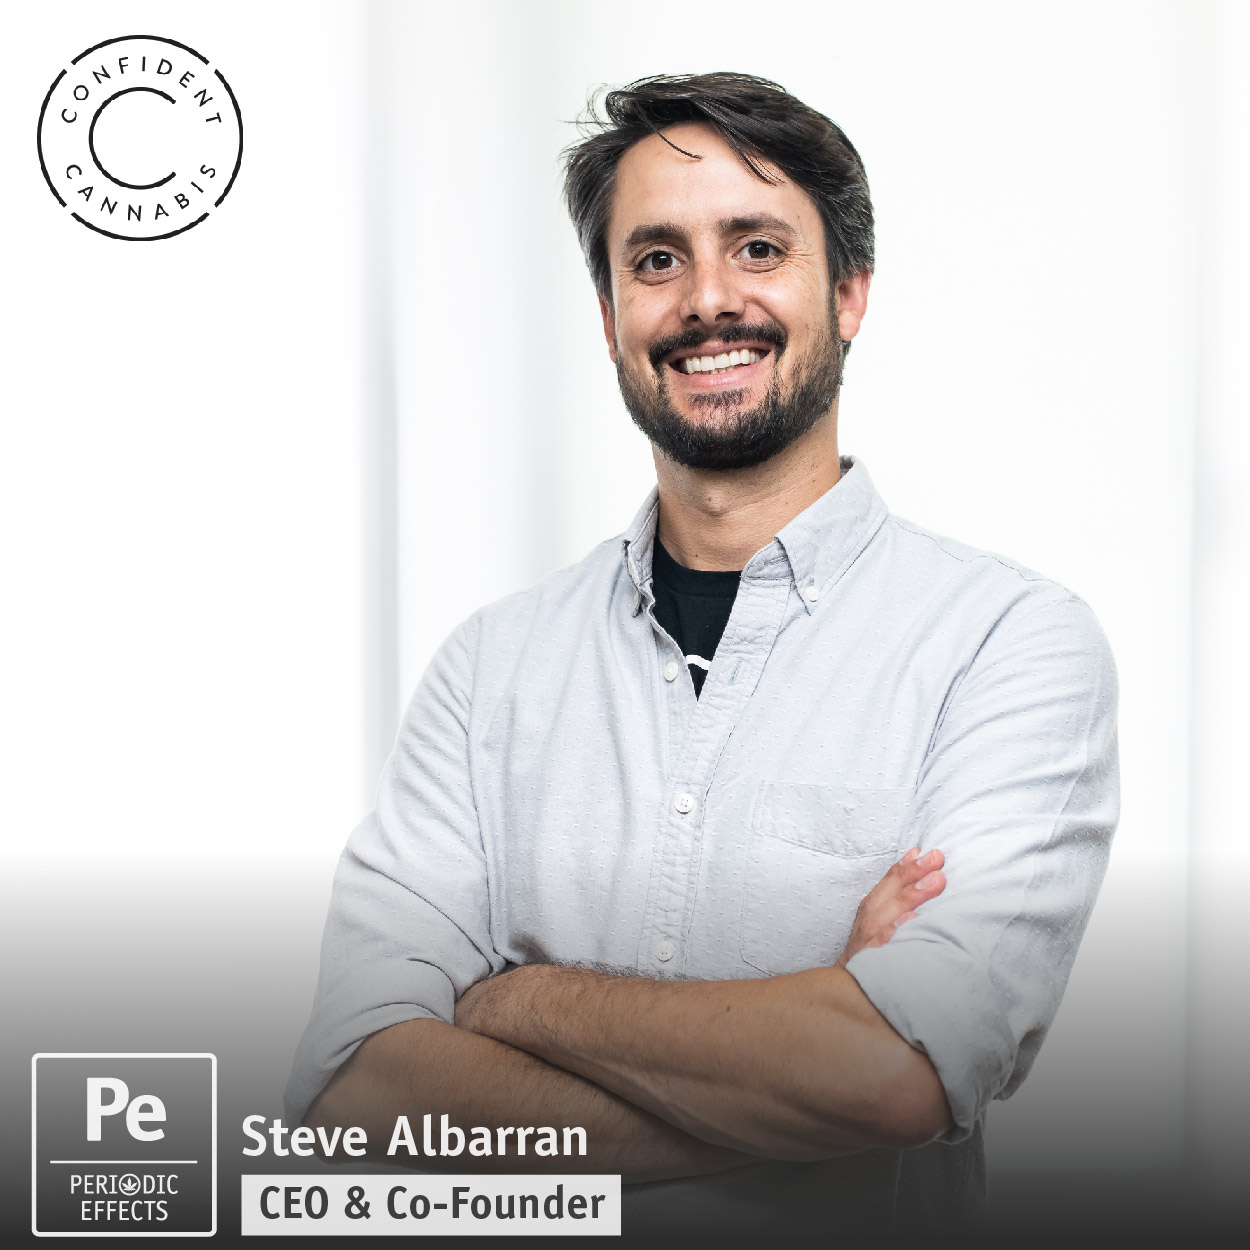 Steve Albarran, CEO and Co-Founder of Confident Cannabis, a wholesale platform that integrates lab testing data for potency, terpenes, pesticides, solvents and other compliance testing